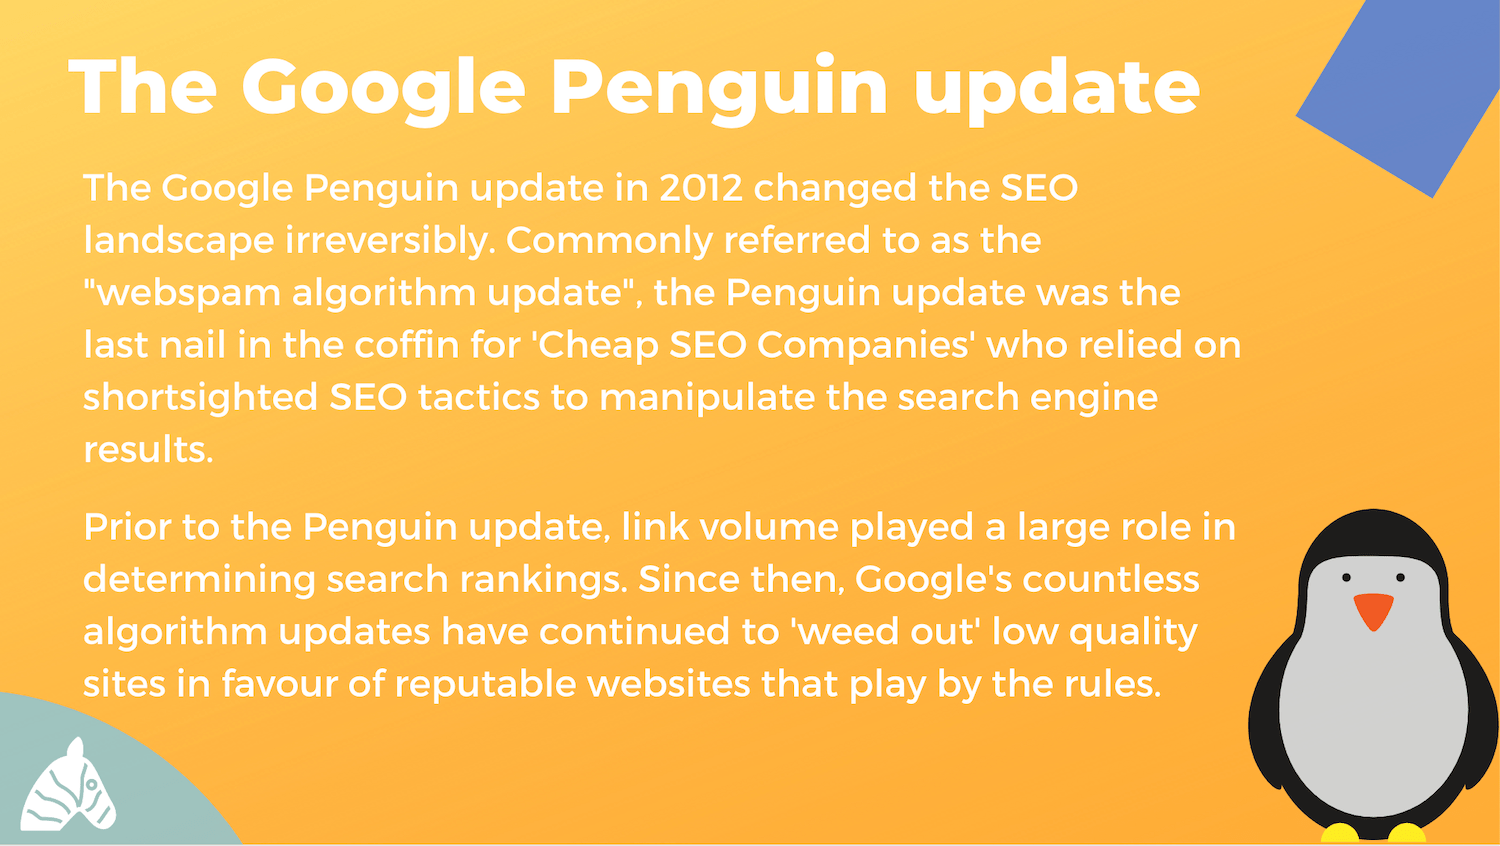 What the Google Penguin update means for websites